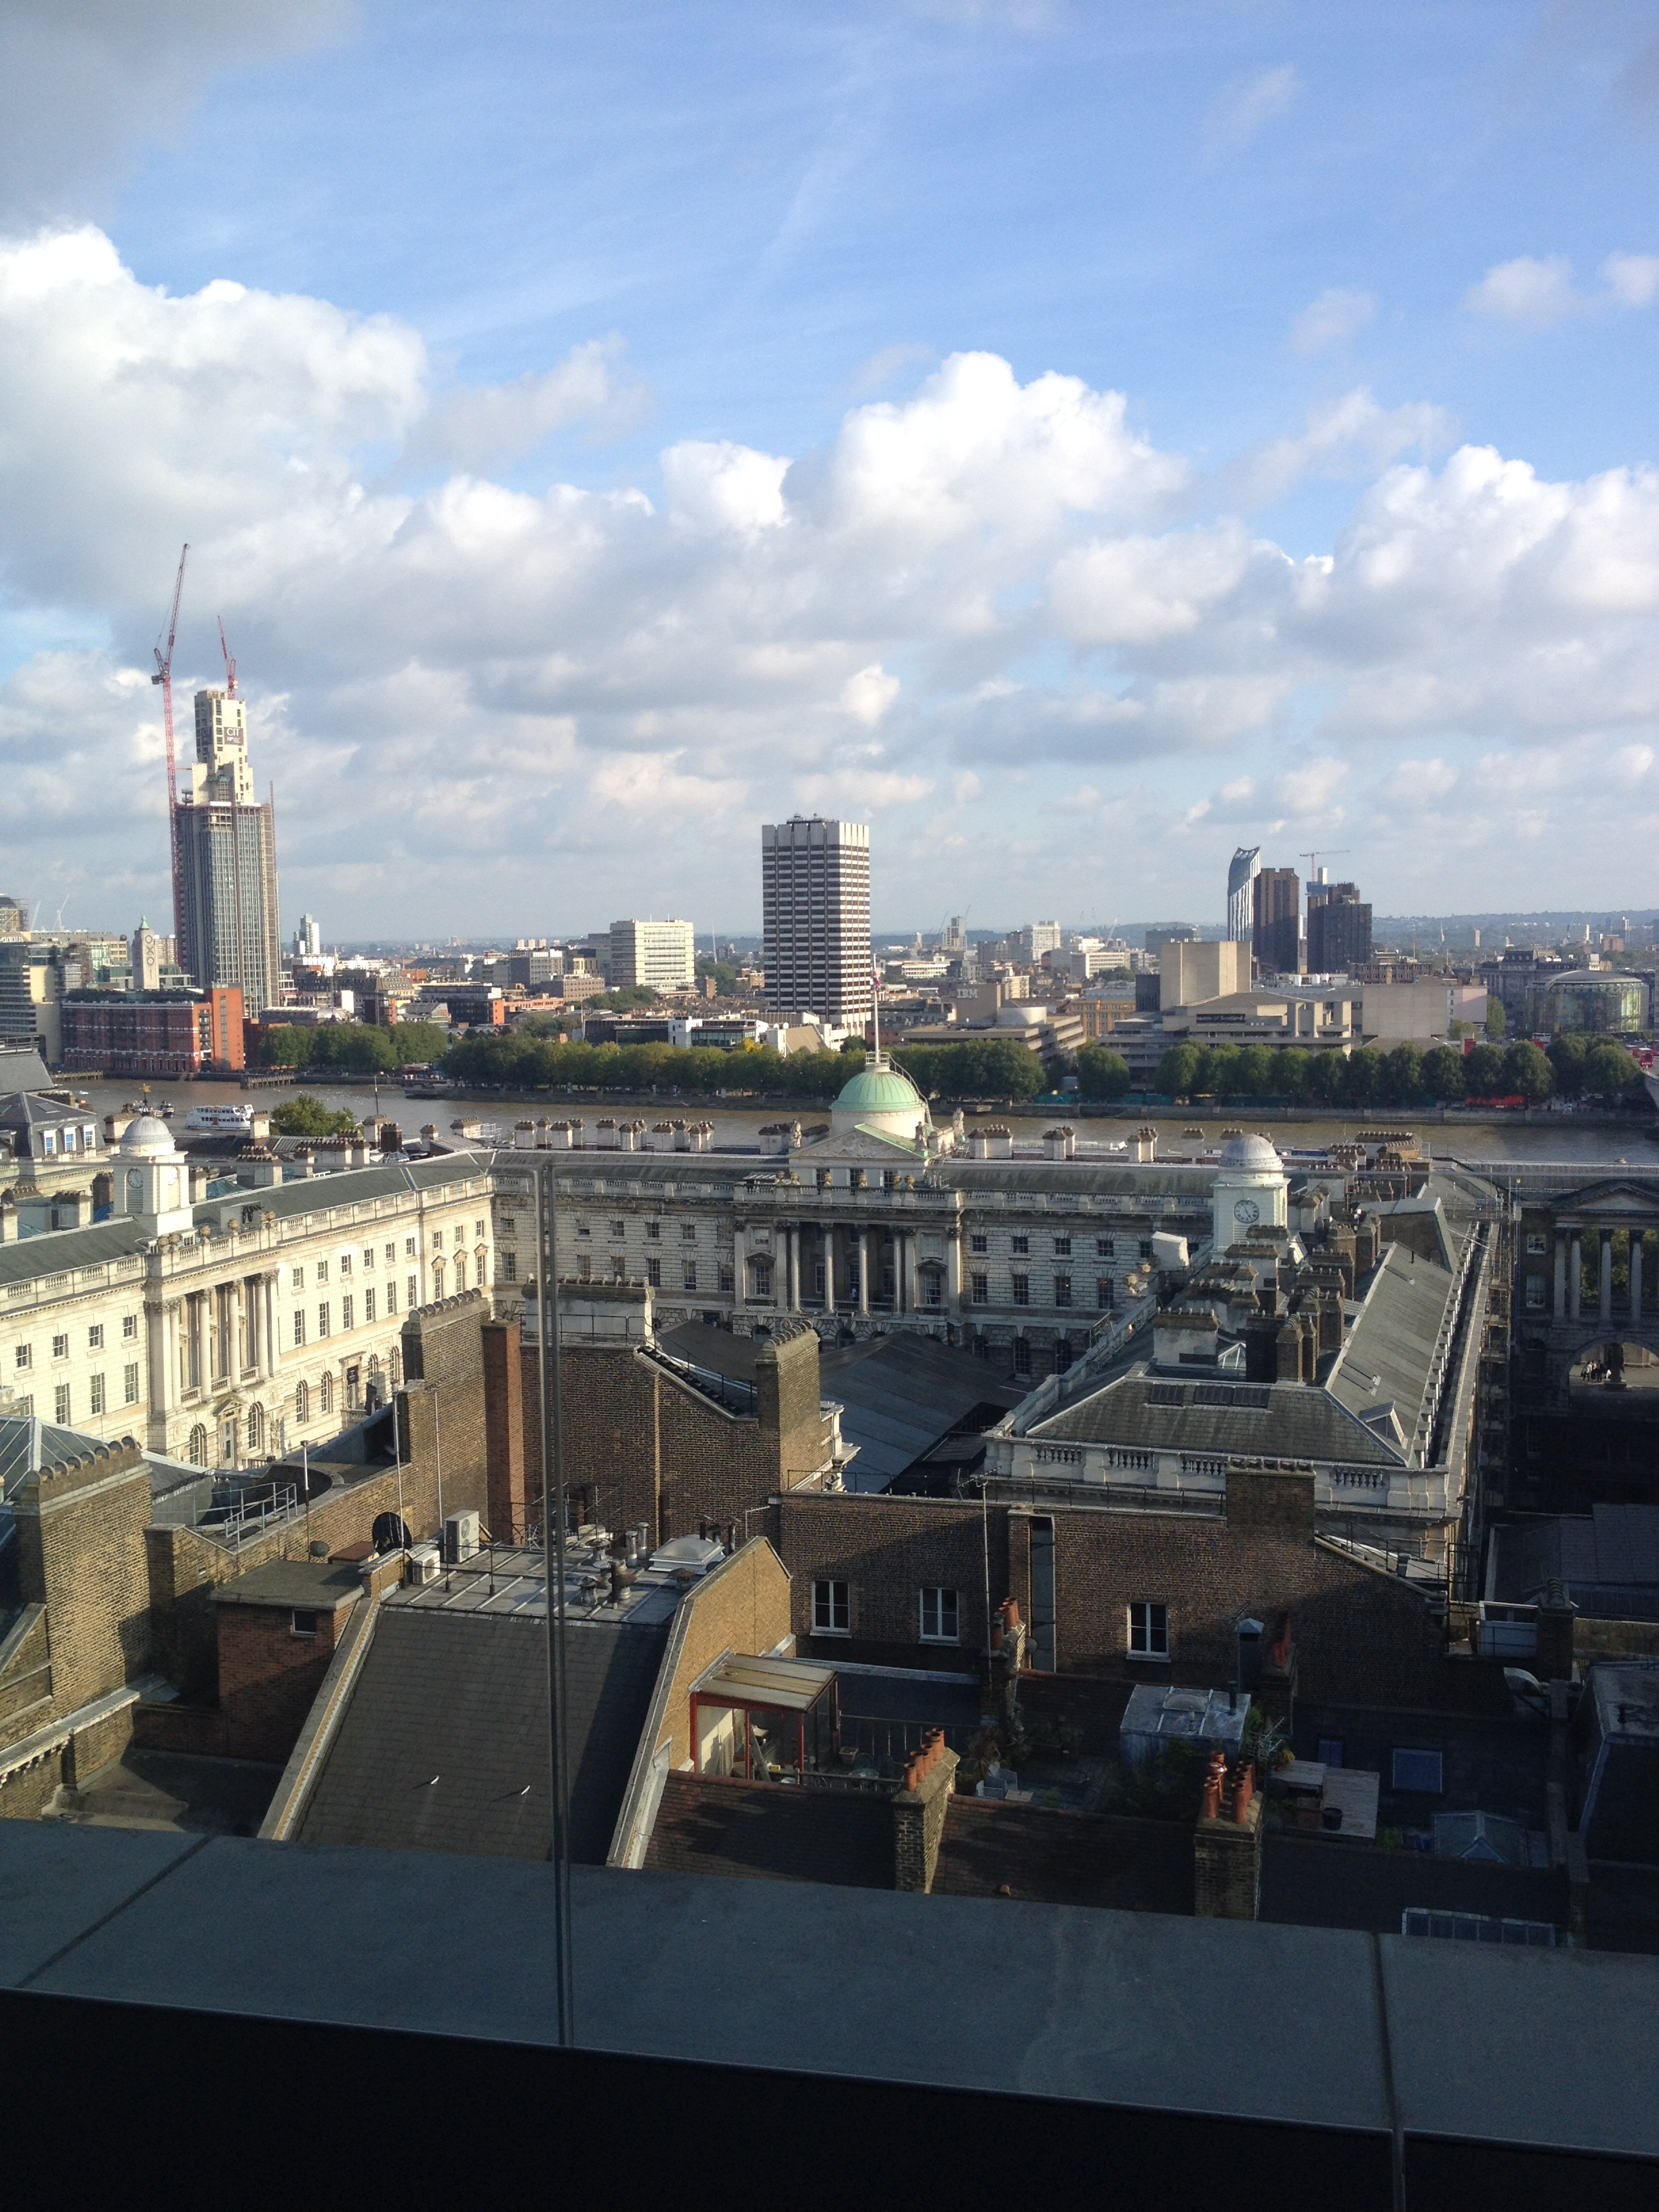 lfw - me hotel view 2